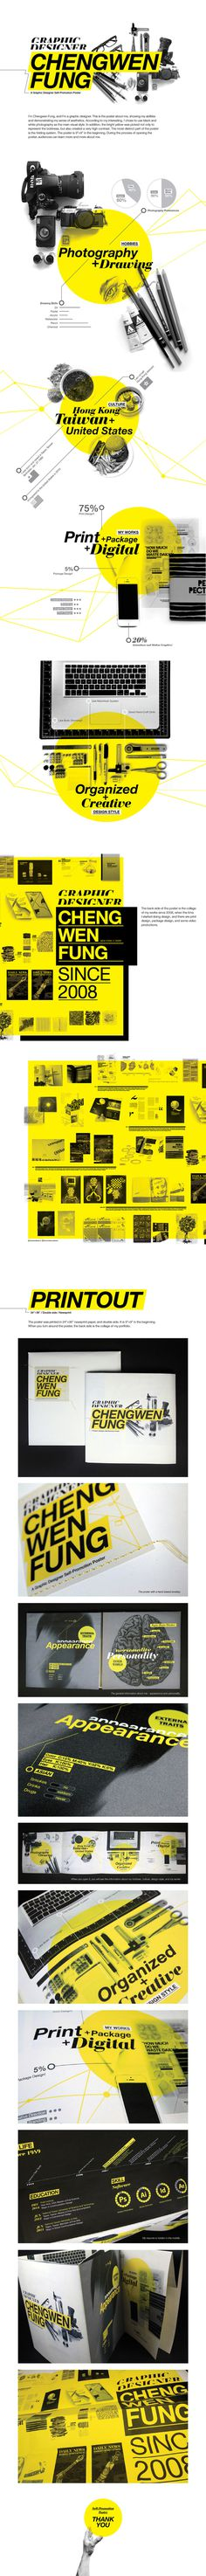 Self-Promotion poster on Behance #press kit